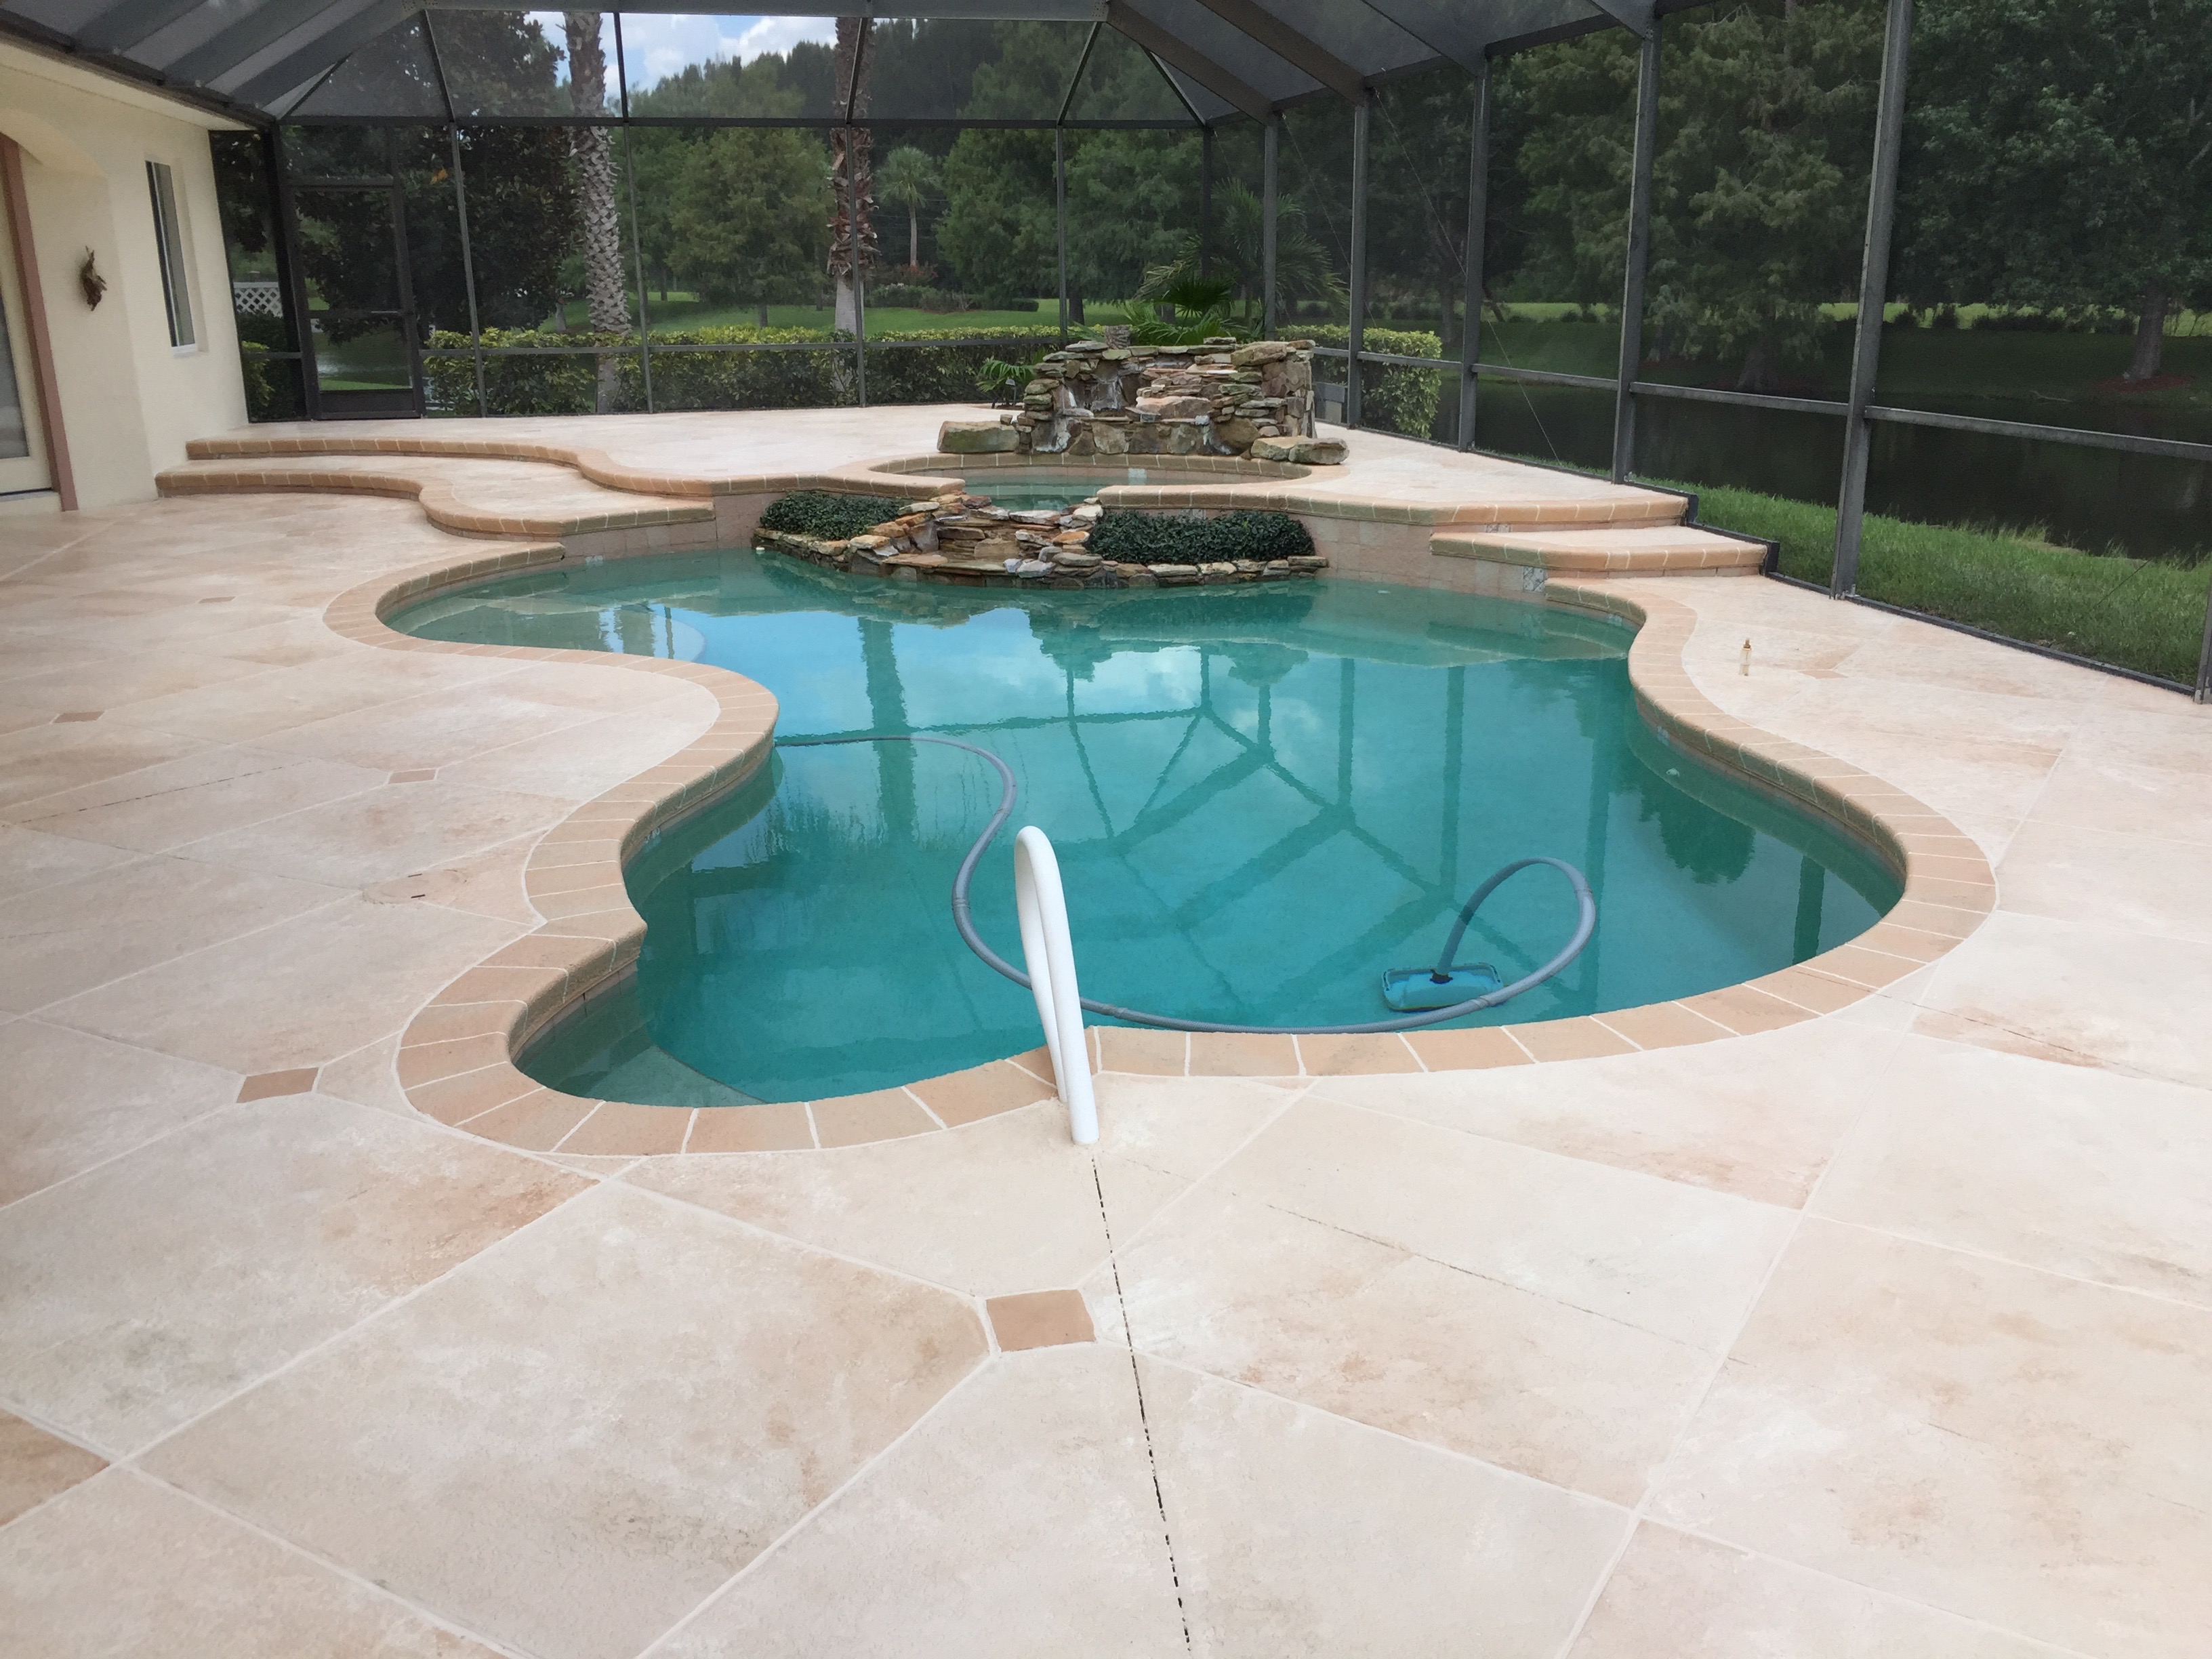 Amazing Look For This 2000 Square Foot Pool Deck Travertine Inspired Design With Complimentary Tile Around The Coping And Stairs Is Definitely